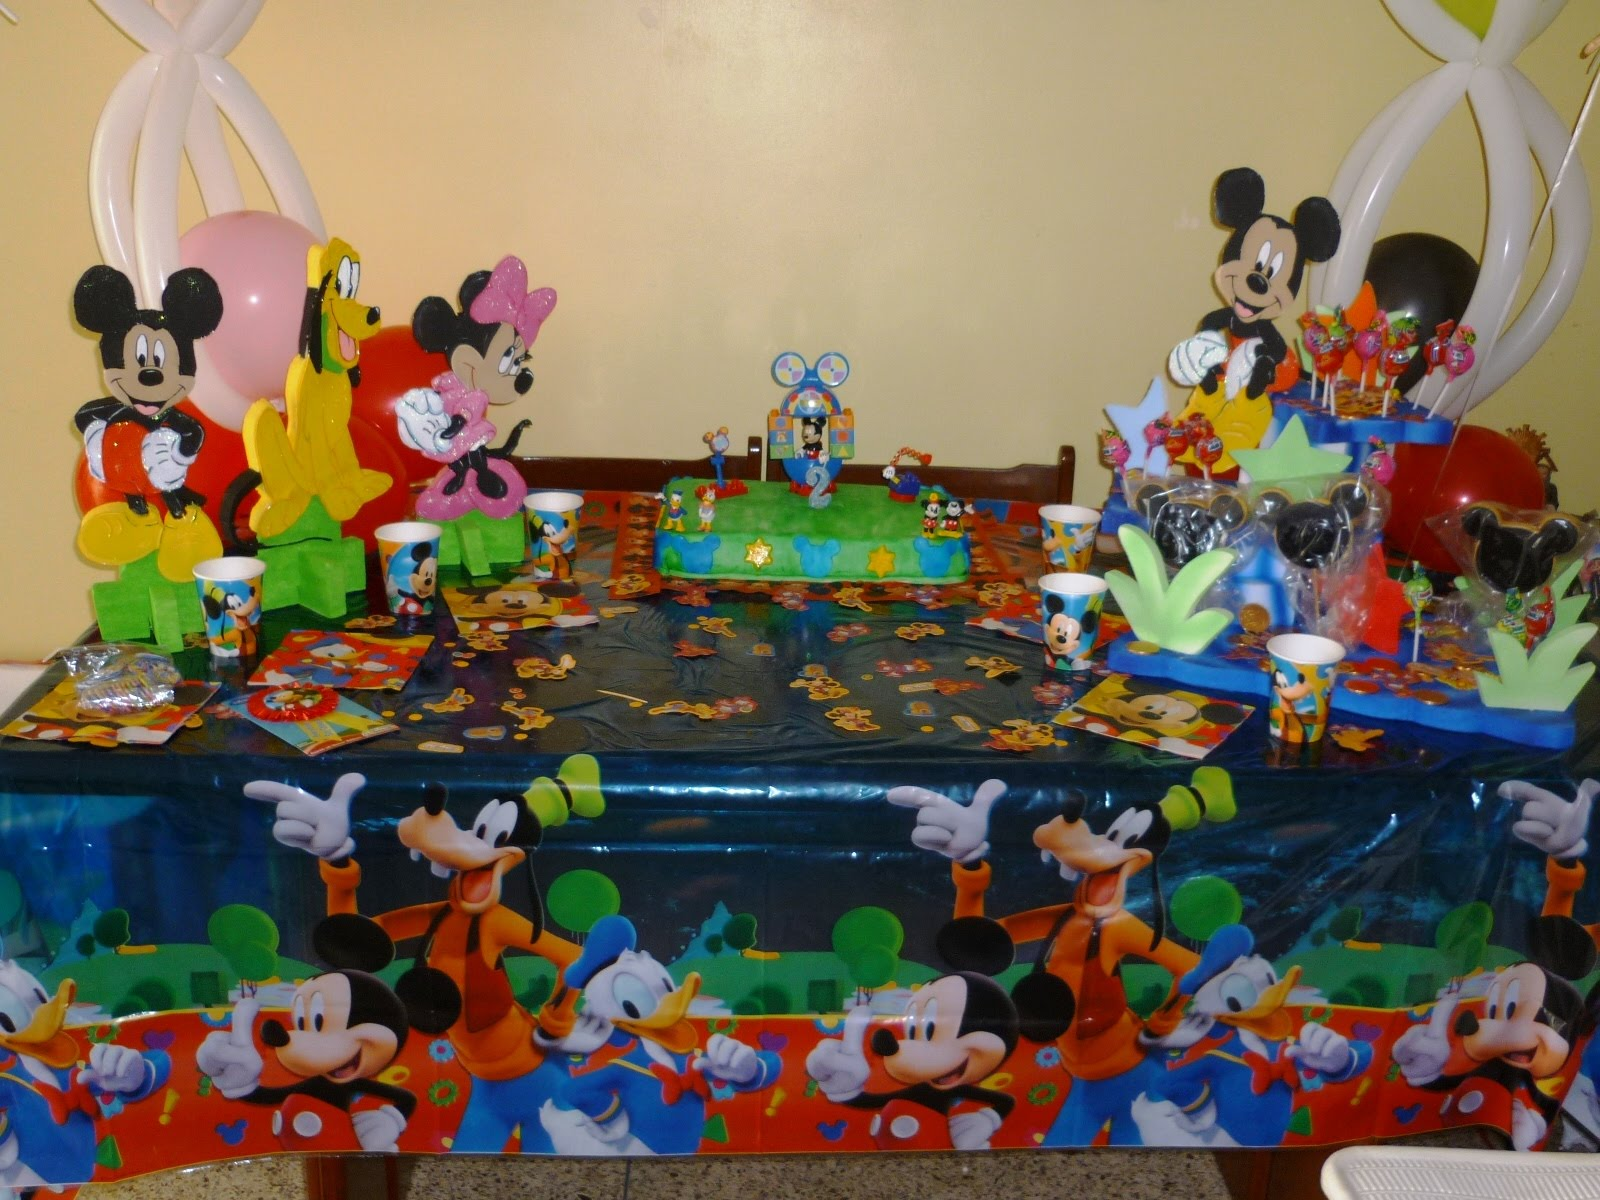 Mickey Mouse Decoraciones Para Fiestas ~ Download image Mickey Mouse Decoracion Alex Decoraciones PC, Android